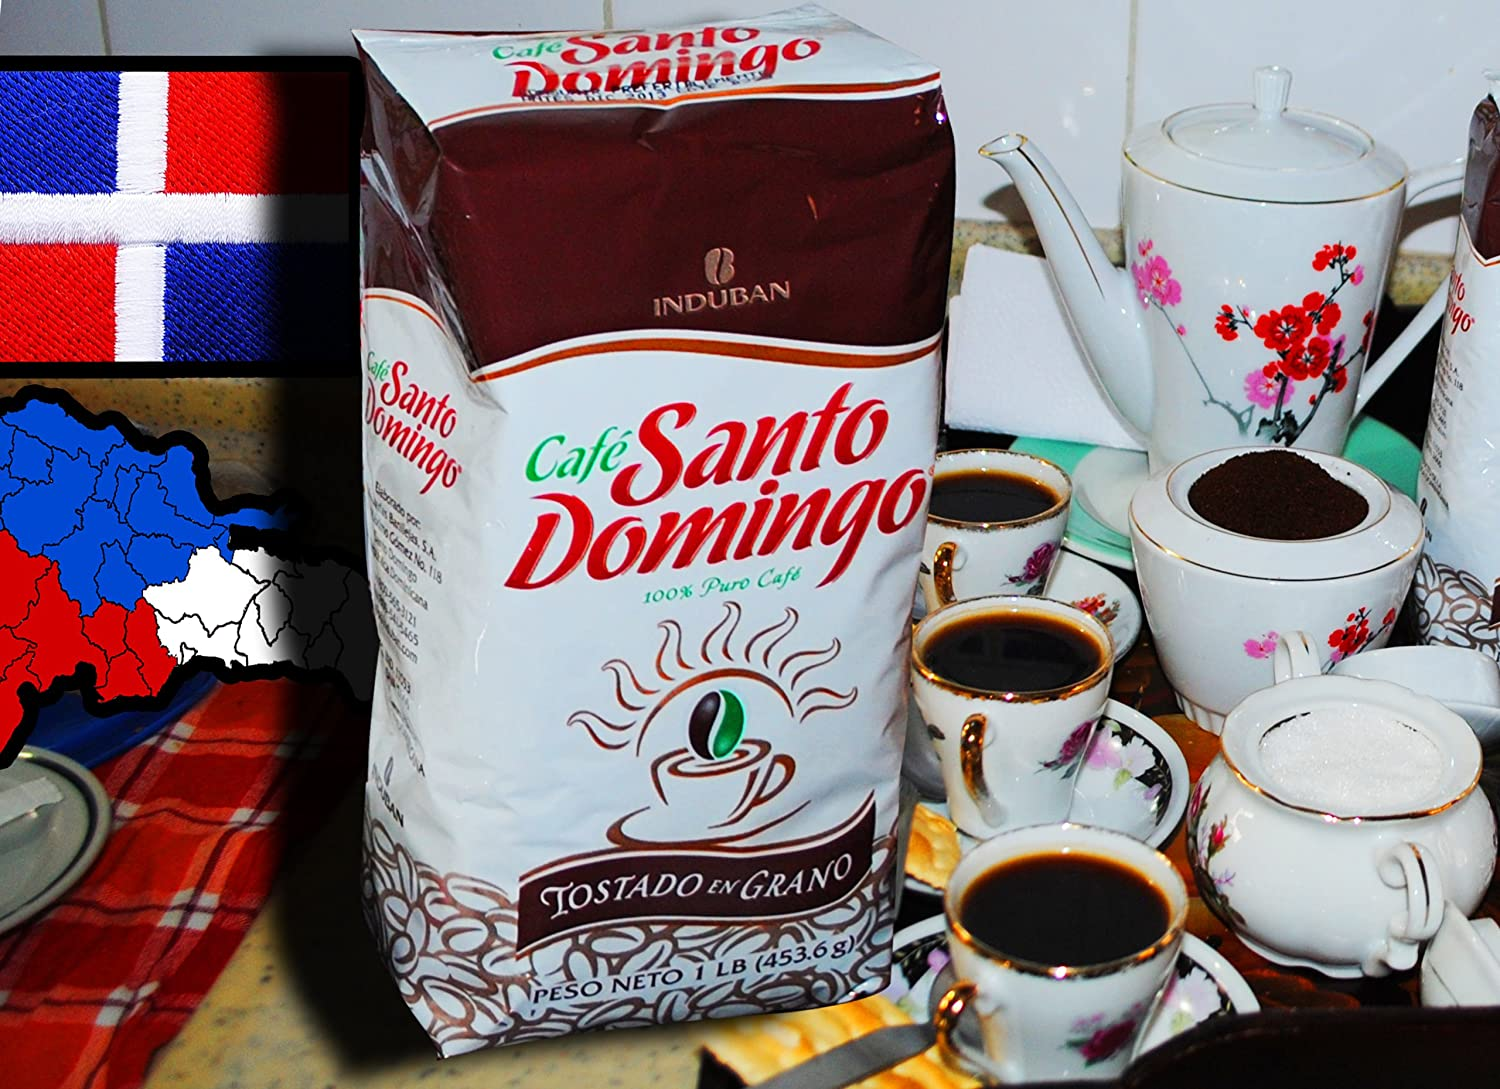 Cafe Molido Santo Domingo Coffee 1 Lb. Bags 3-pack 3 Lbs. Total